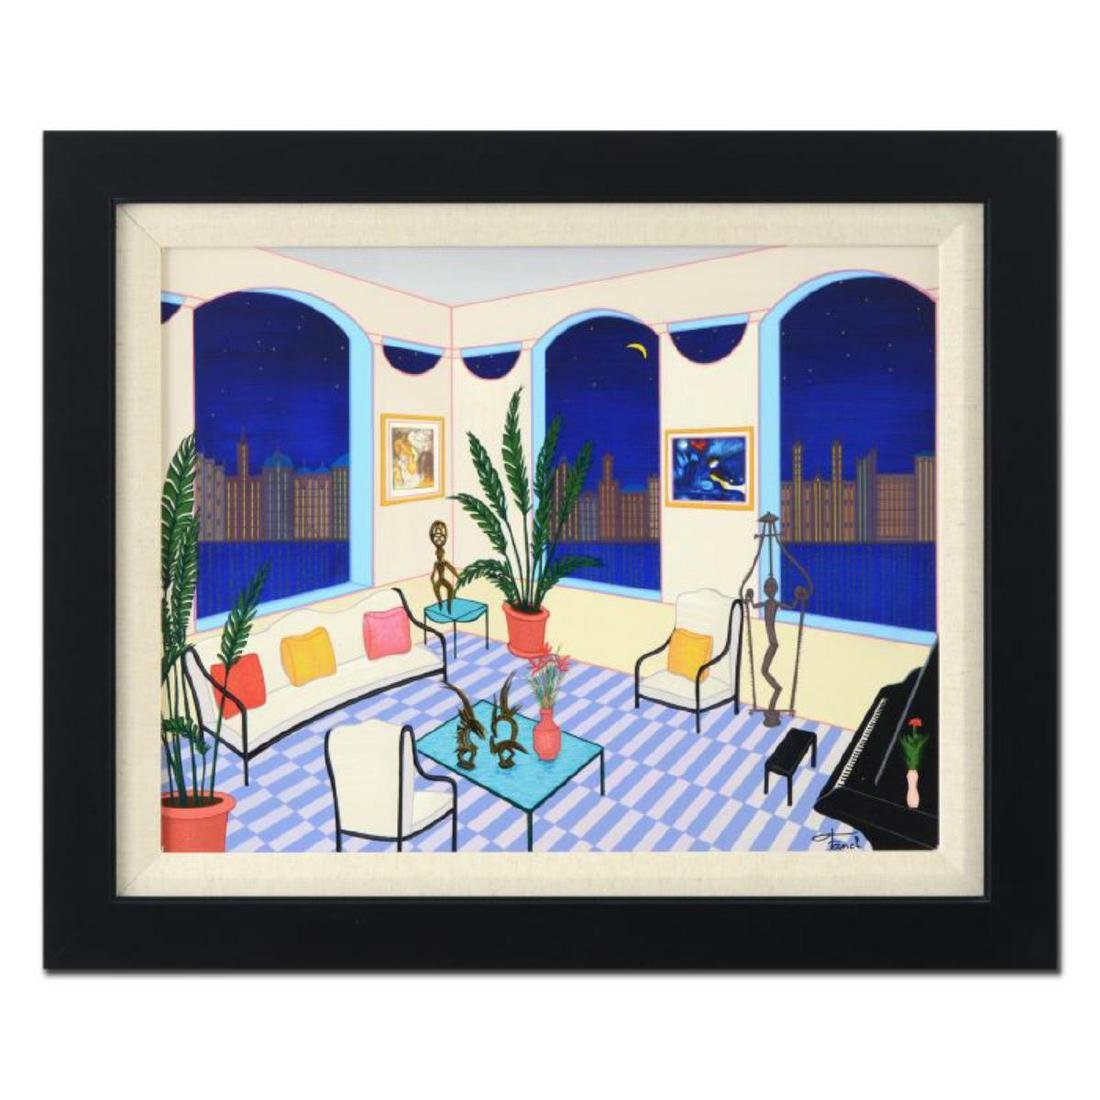 "Fanch Ledan - ""Interior with Primitive Art"" Framed"